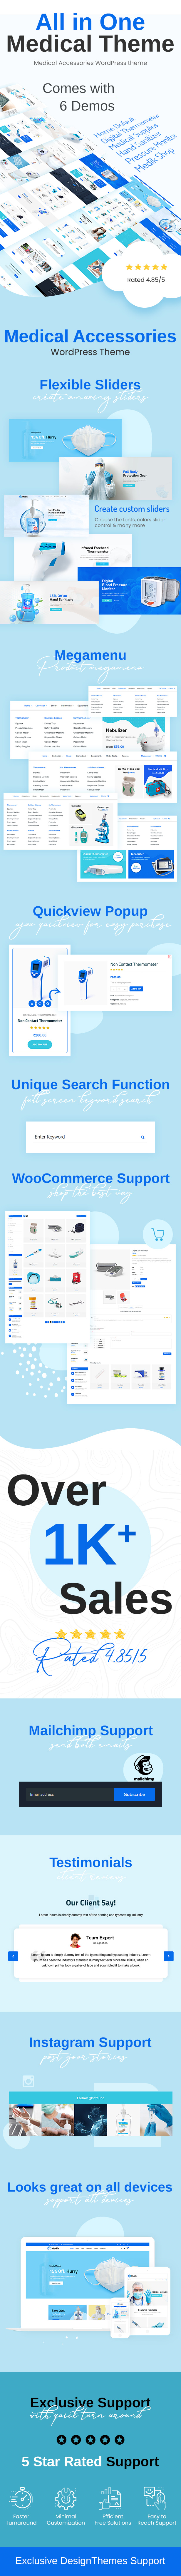 Medik - Medical WooCommerce Theme - 1